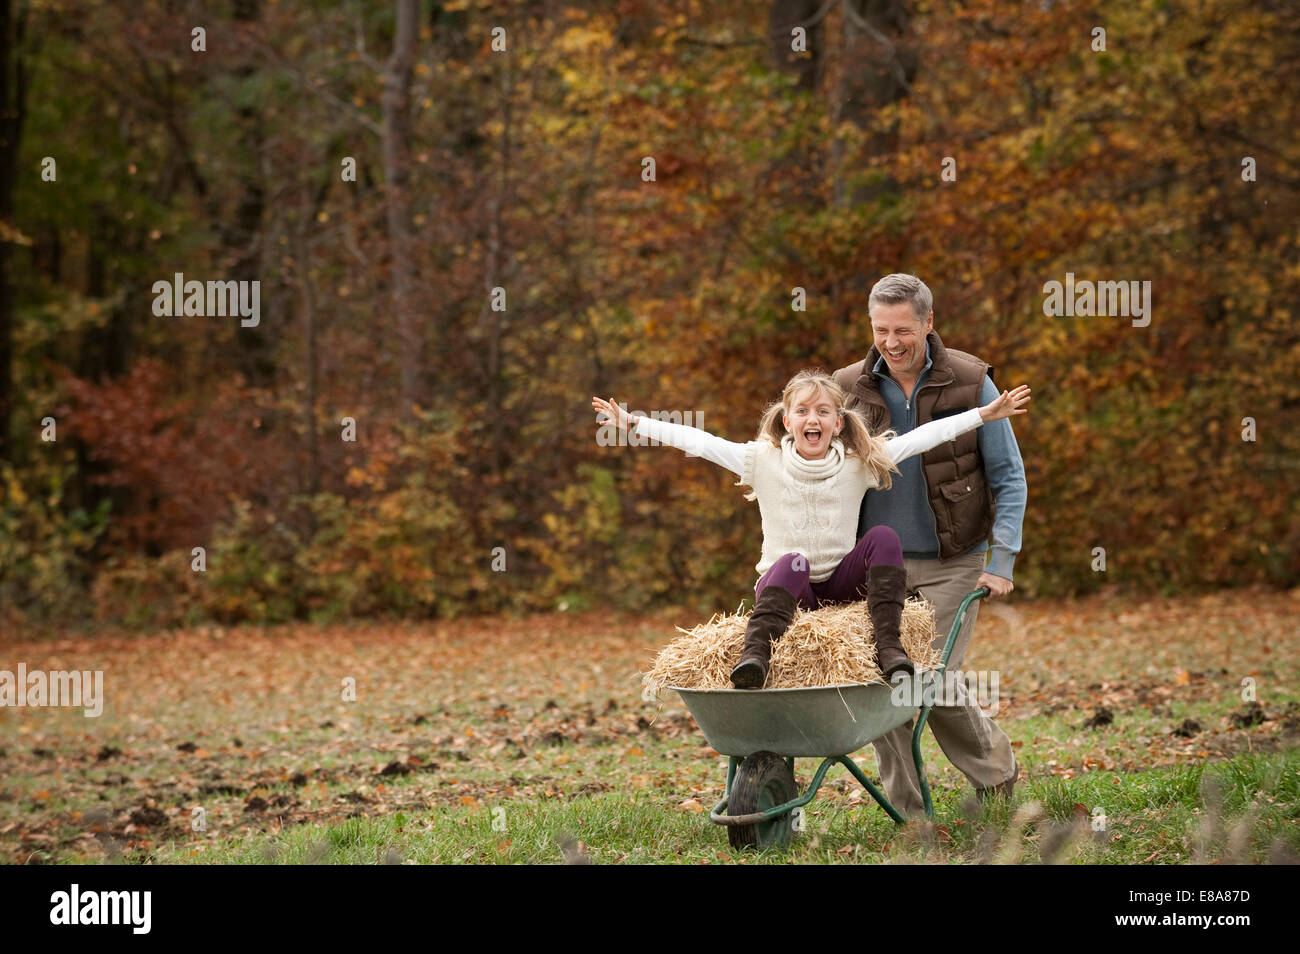 Father pushing happy daughter in wheelbarrow - Stock Image